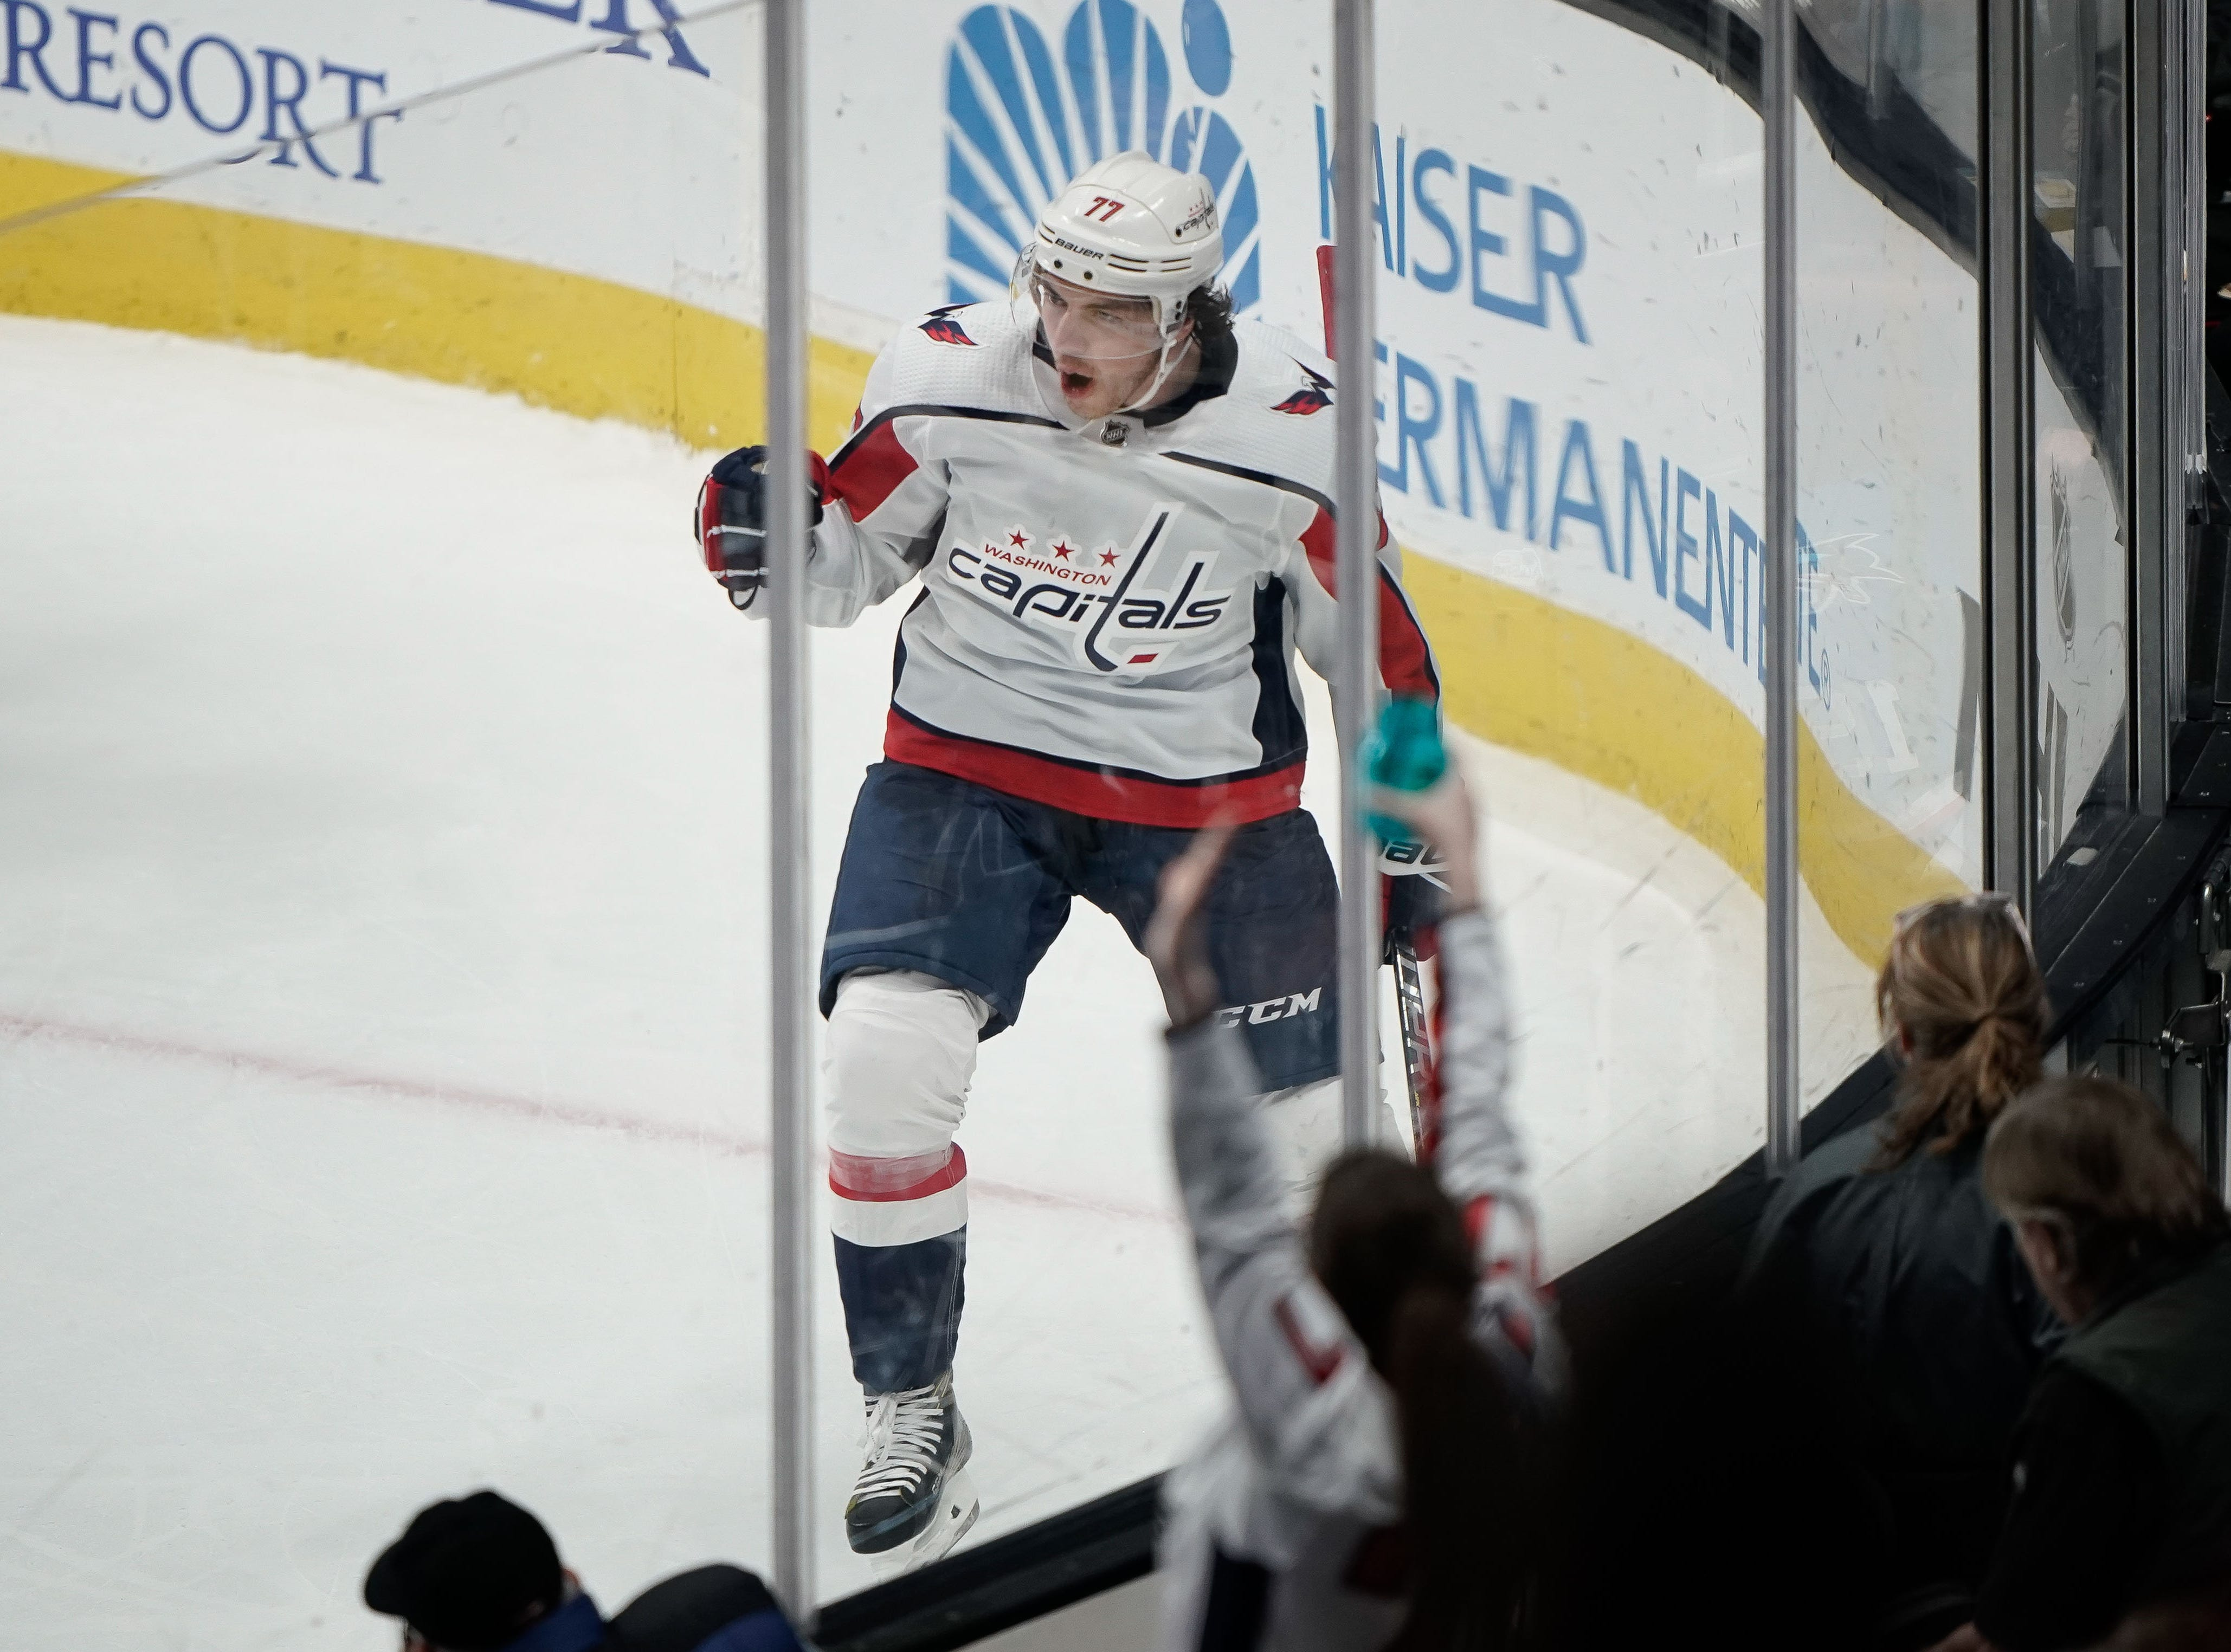 Feb. 14: Washington Capitals right wing T.J. Oshie celebrates after scoring against the San Jose Sharks during the second period at SAP Center. With two goals and an assist Oshie hit 500 points in his career.